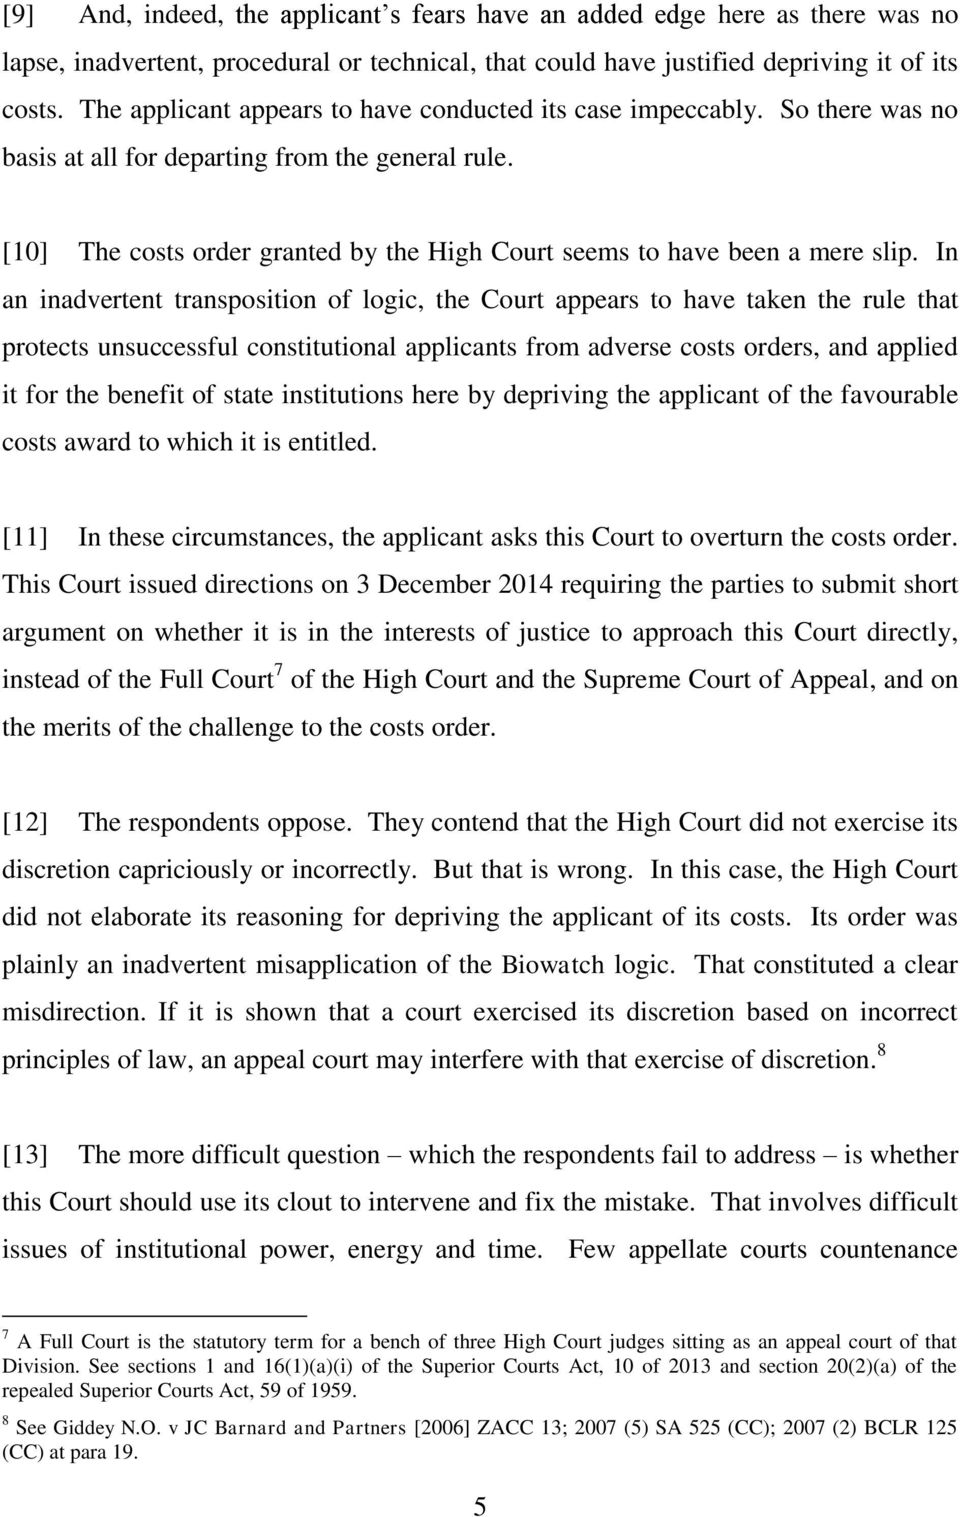 [10] The costs order granted by the High Court seems to have been a mere slip.